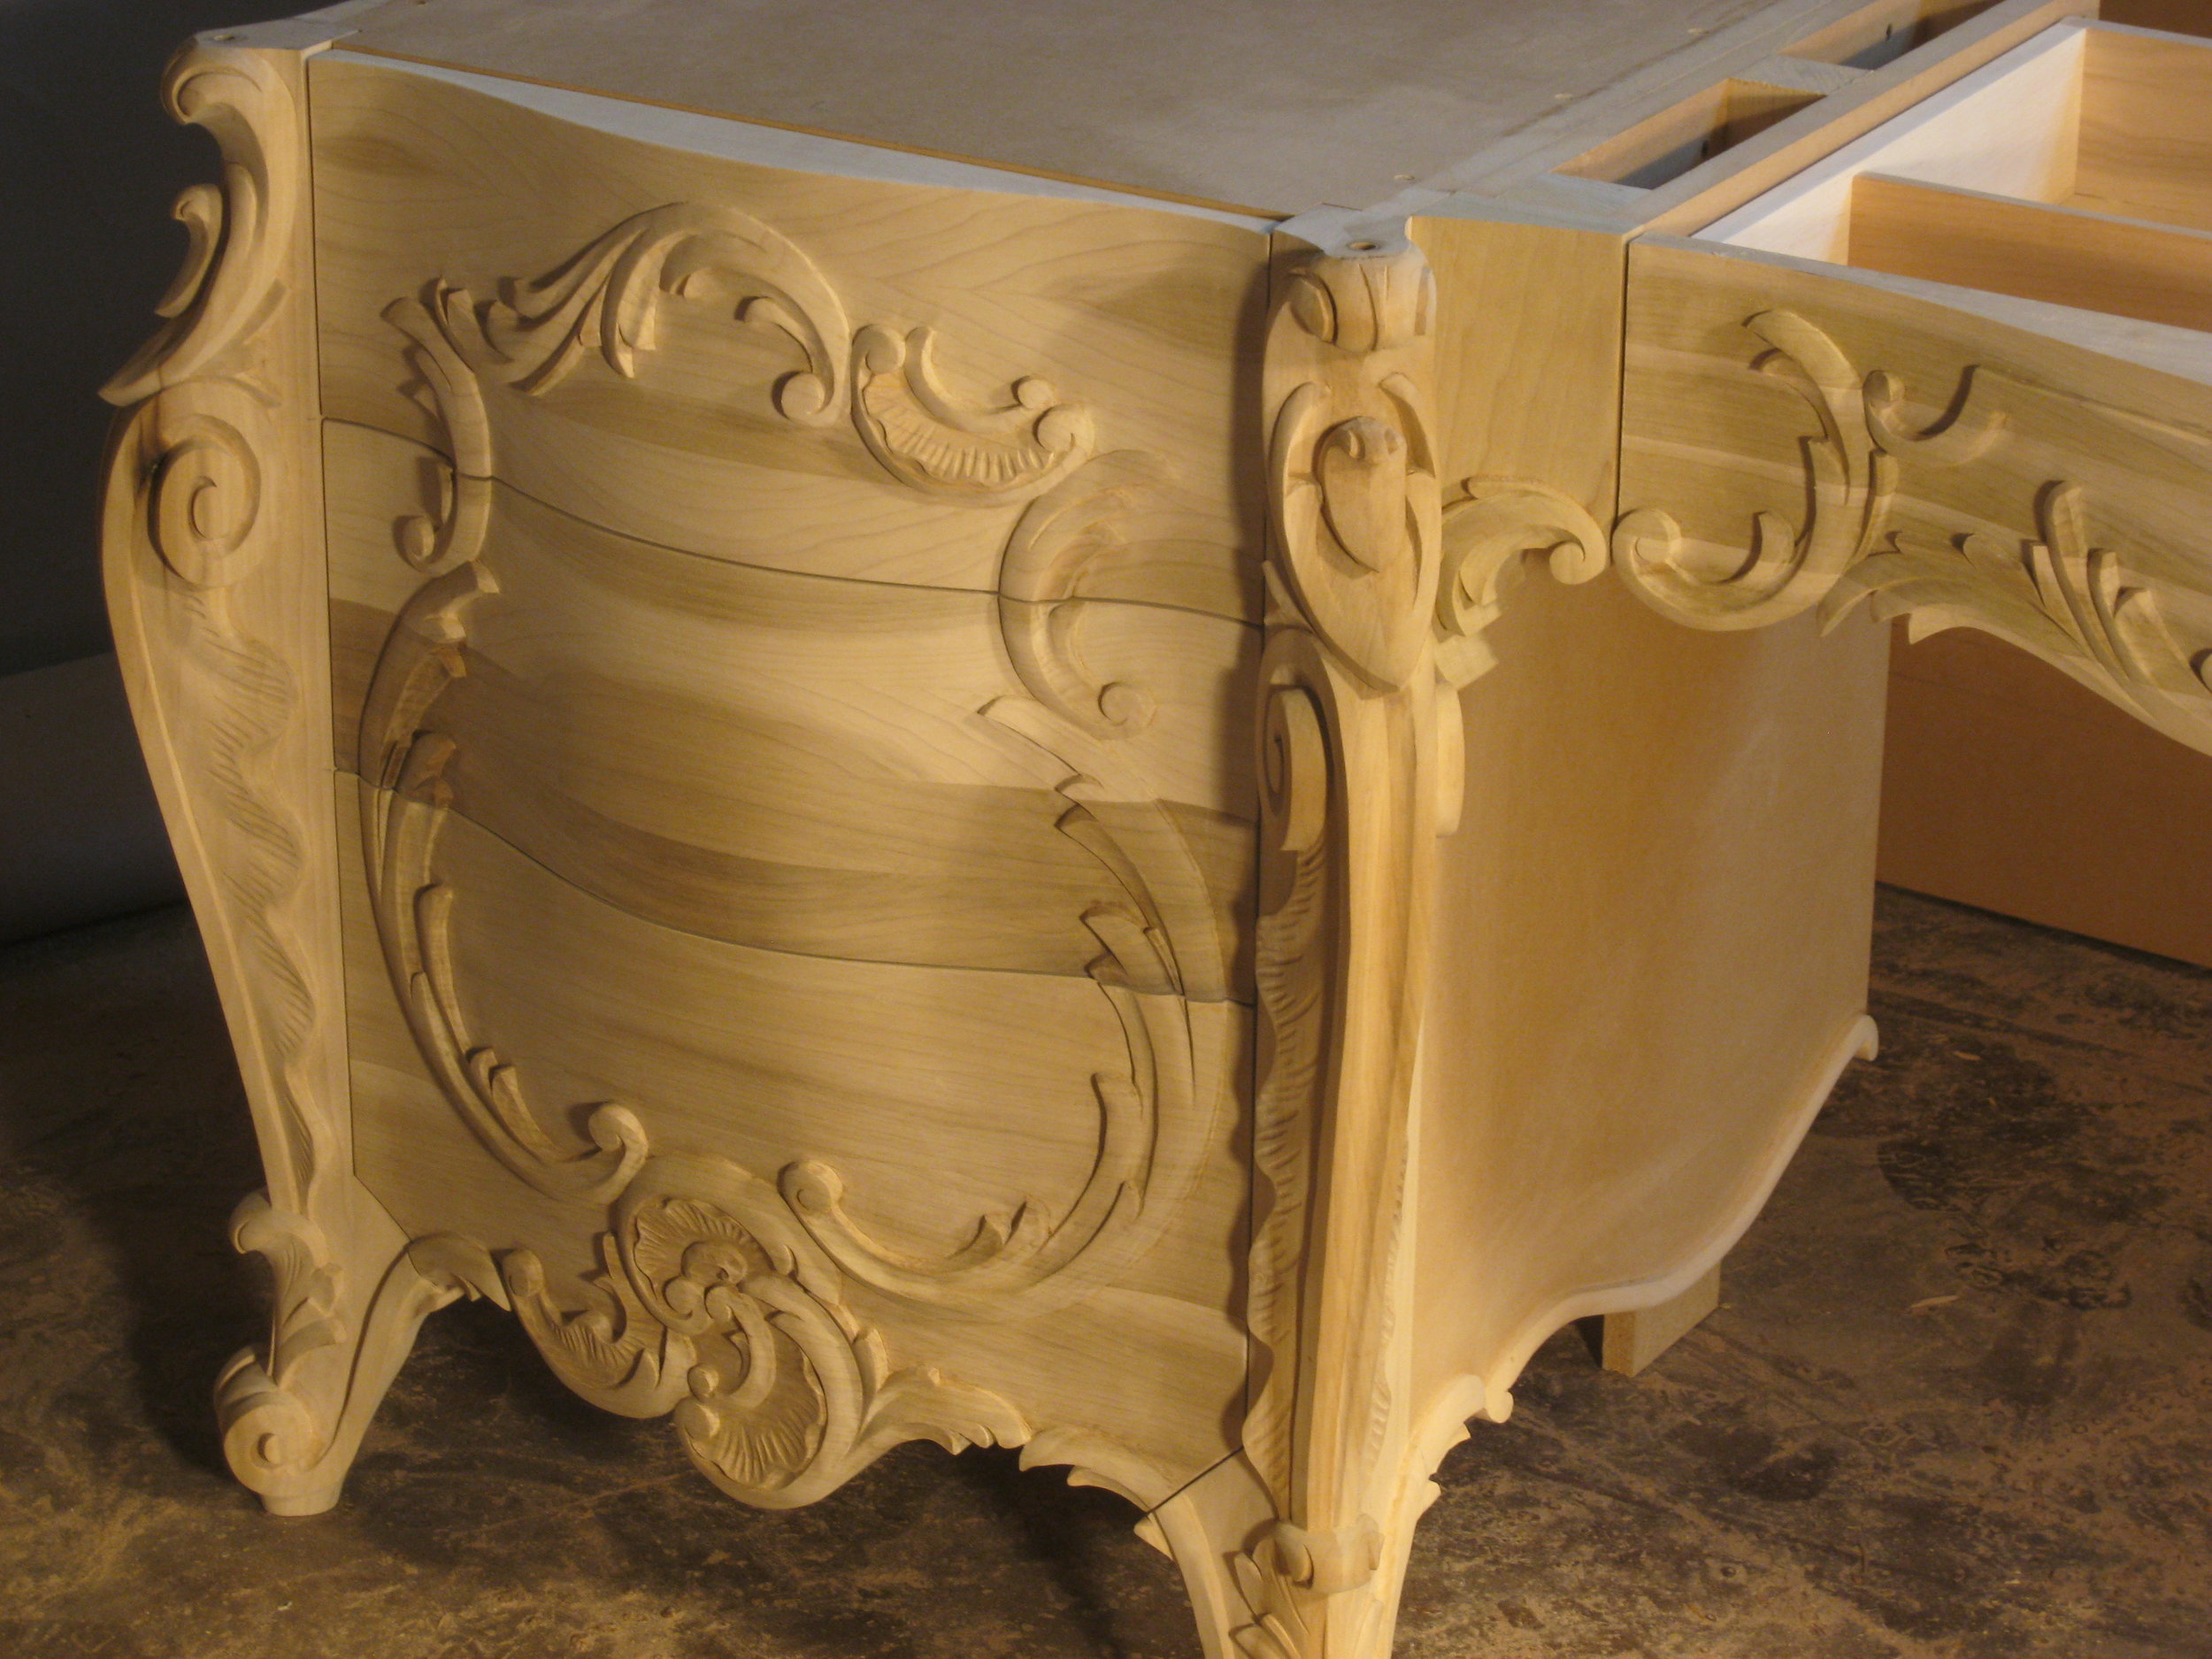 custom carved wood vanity.